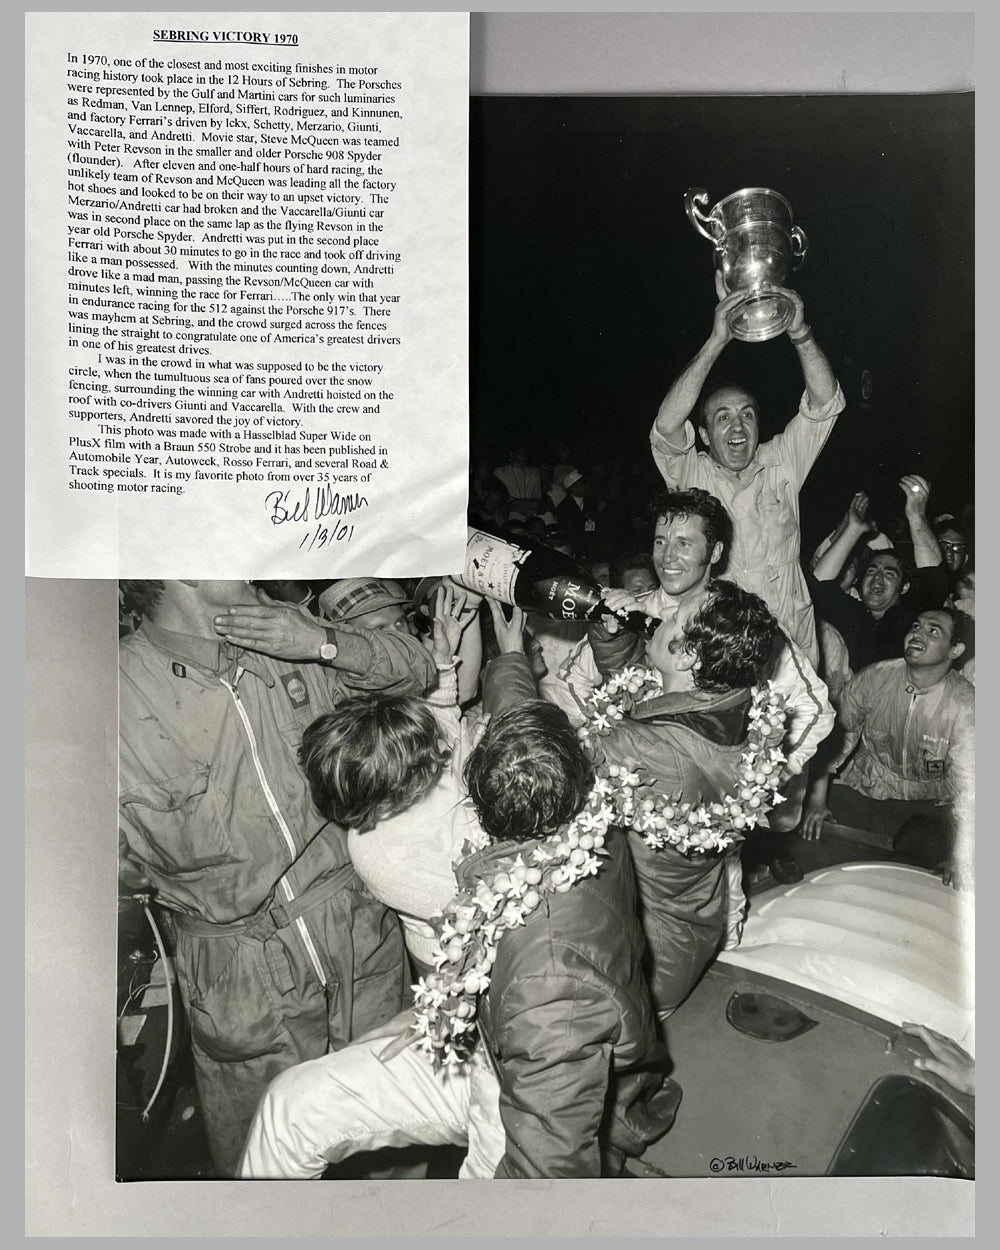 12 Hours of Sebring 1970 victory lane photograph by Bill Warner